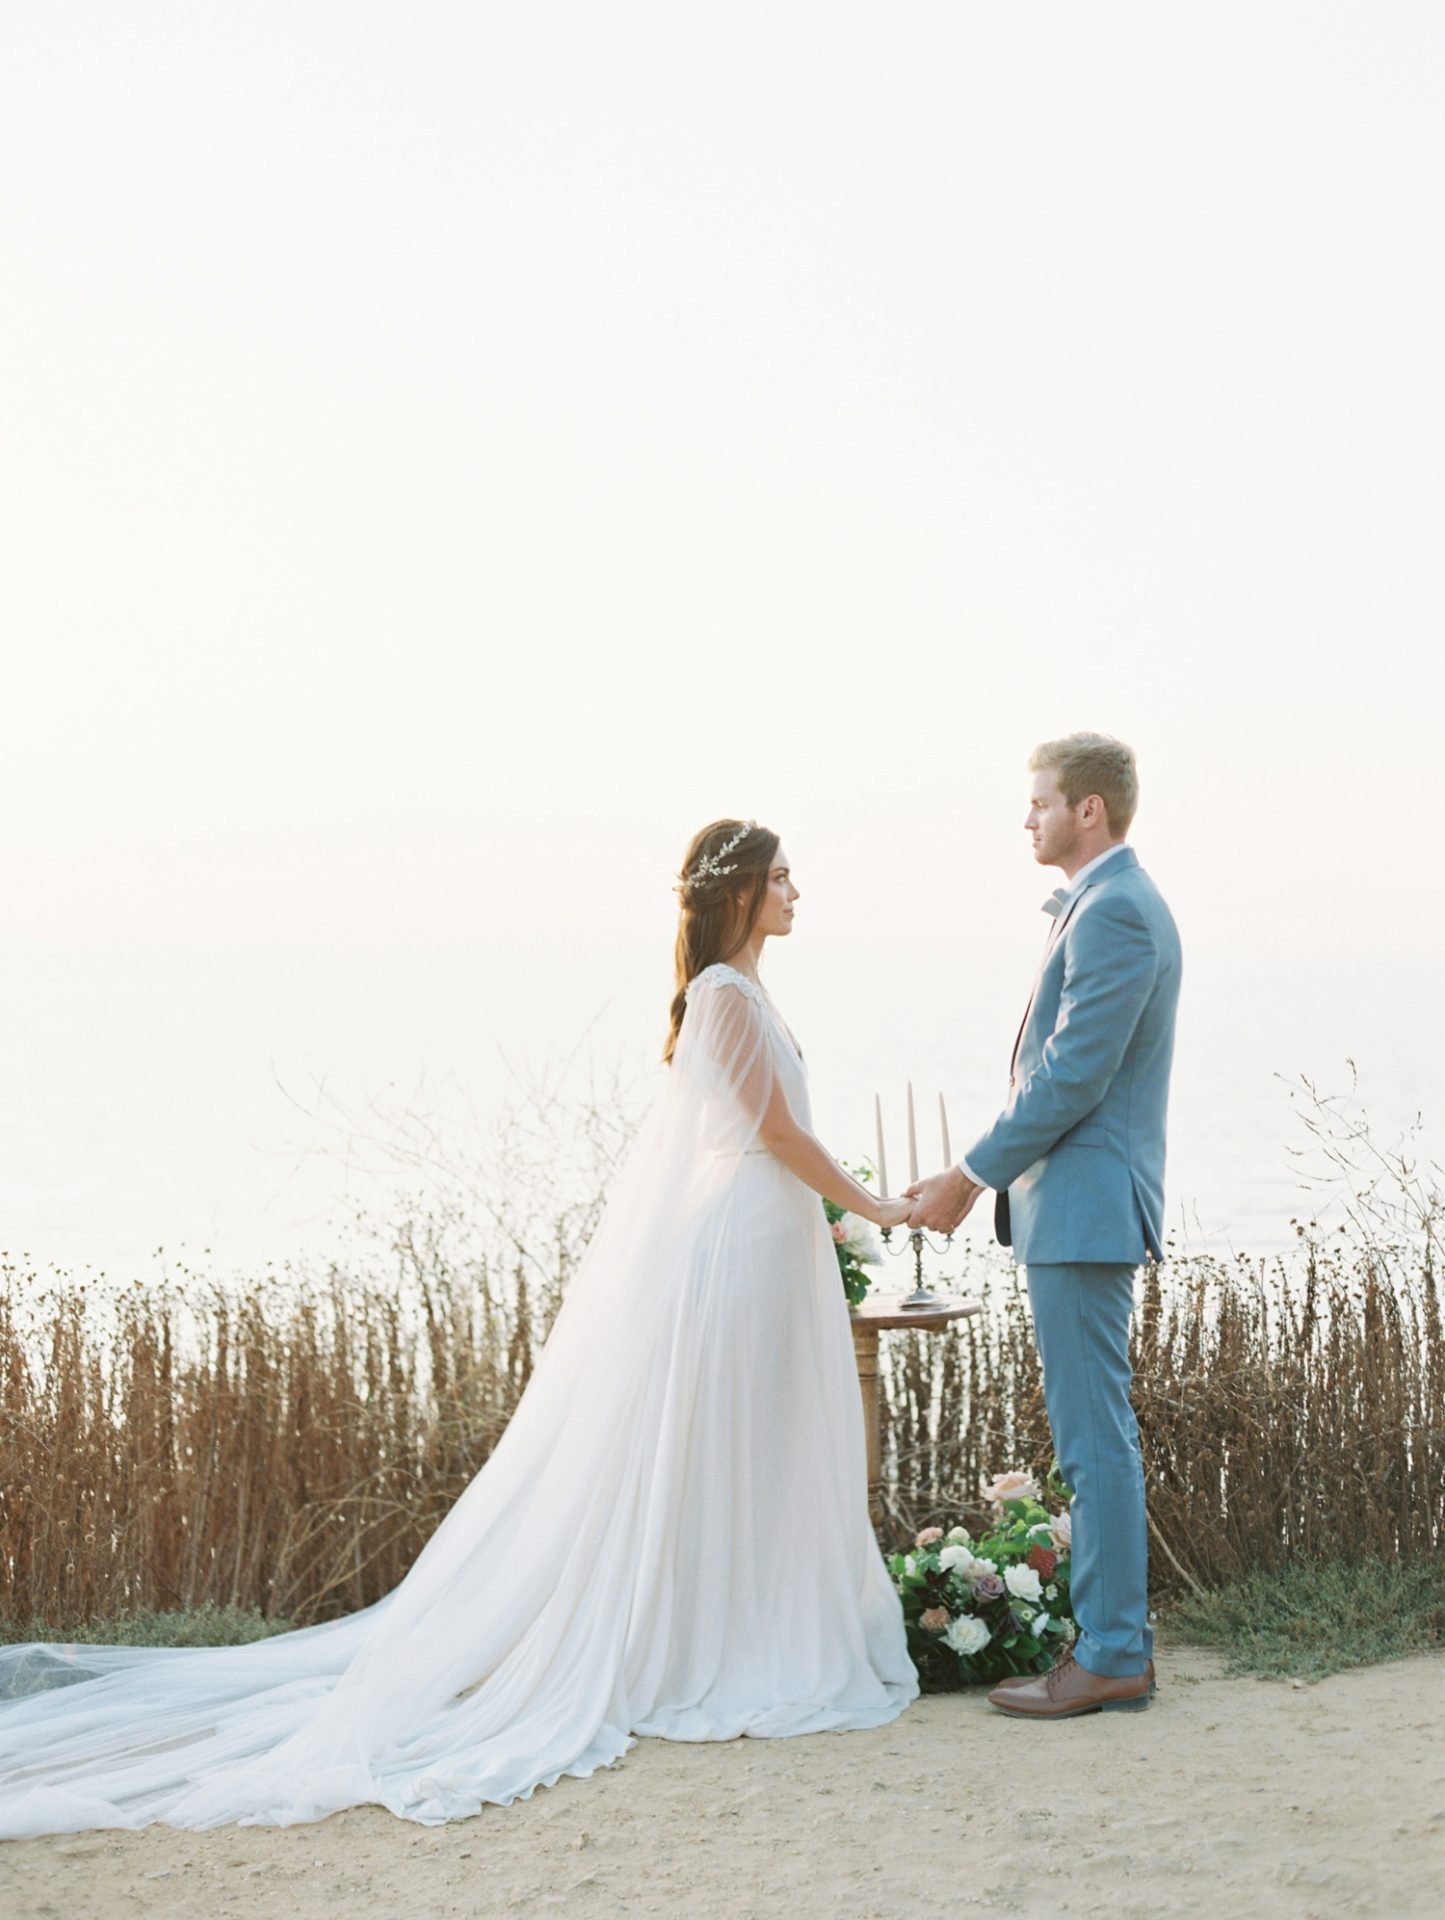 Classy Coastal Elopement In Greece Wedding Ceremony